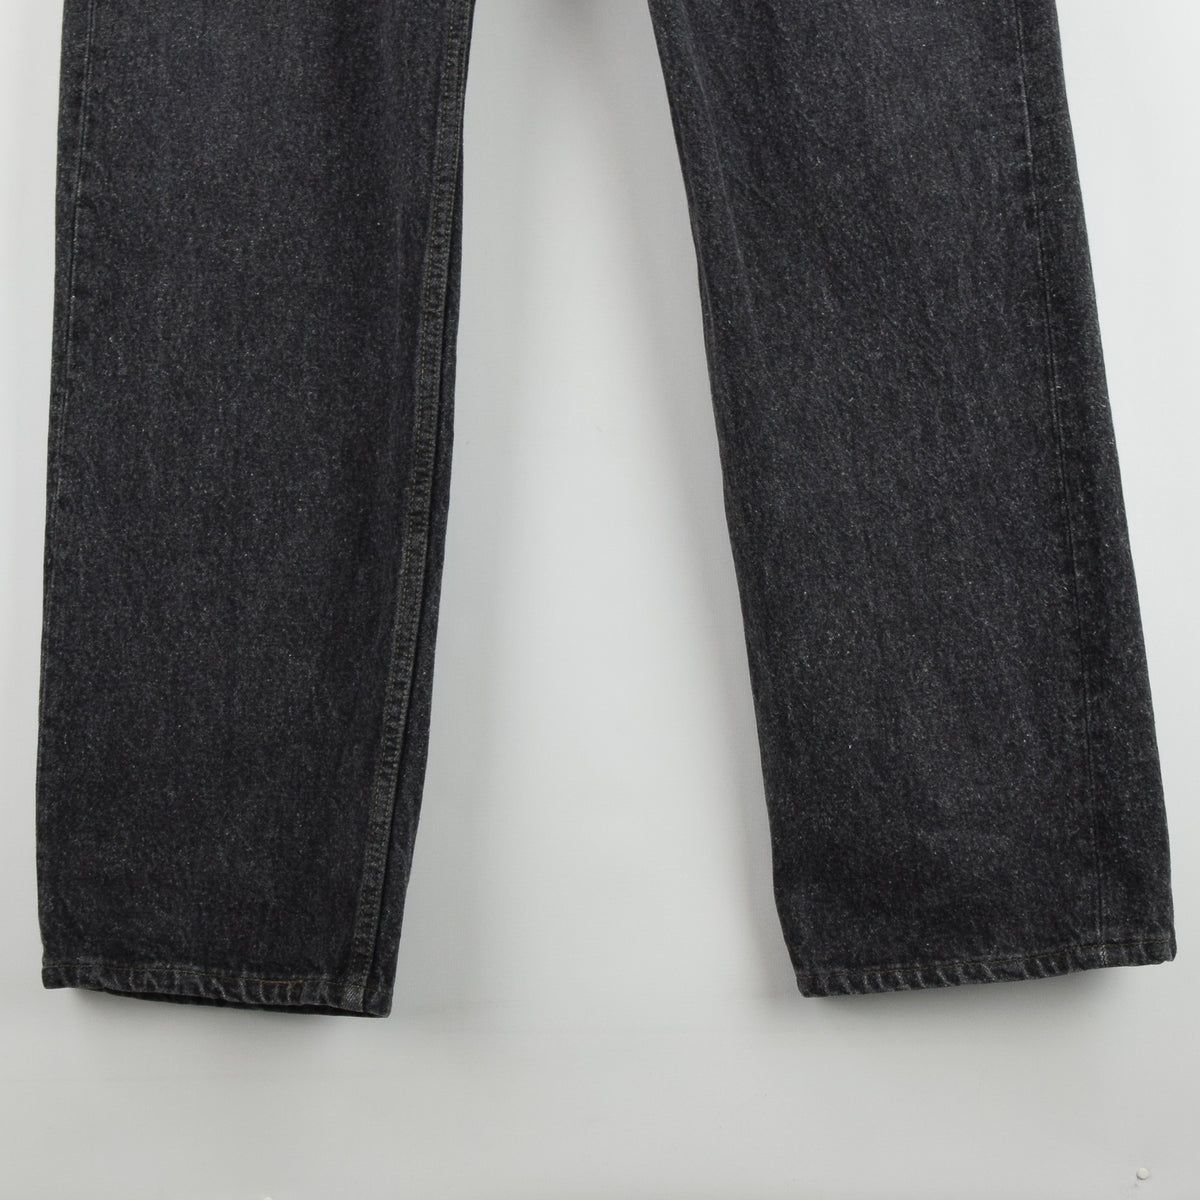 Vintage Levi Red Tab Washed Black Denim Jeans Pant Made in USA 36 W 34 L front hem